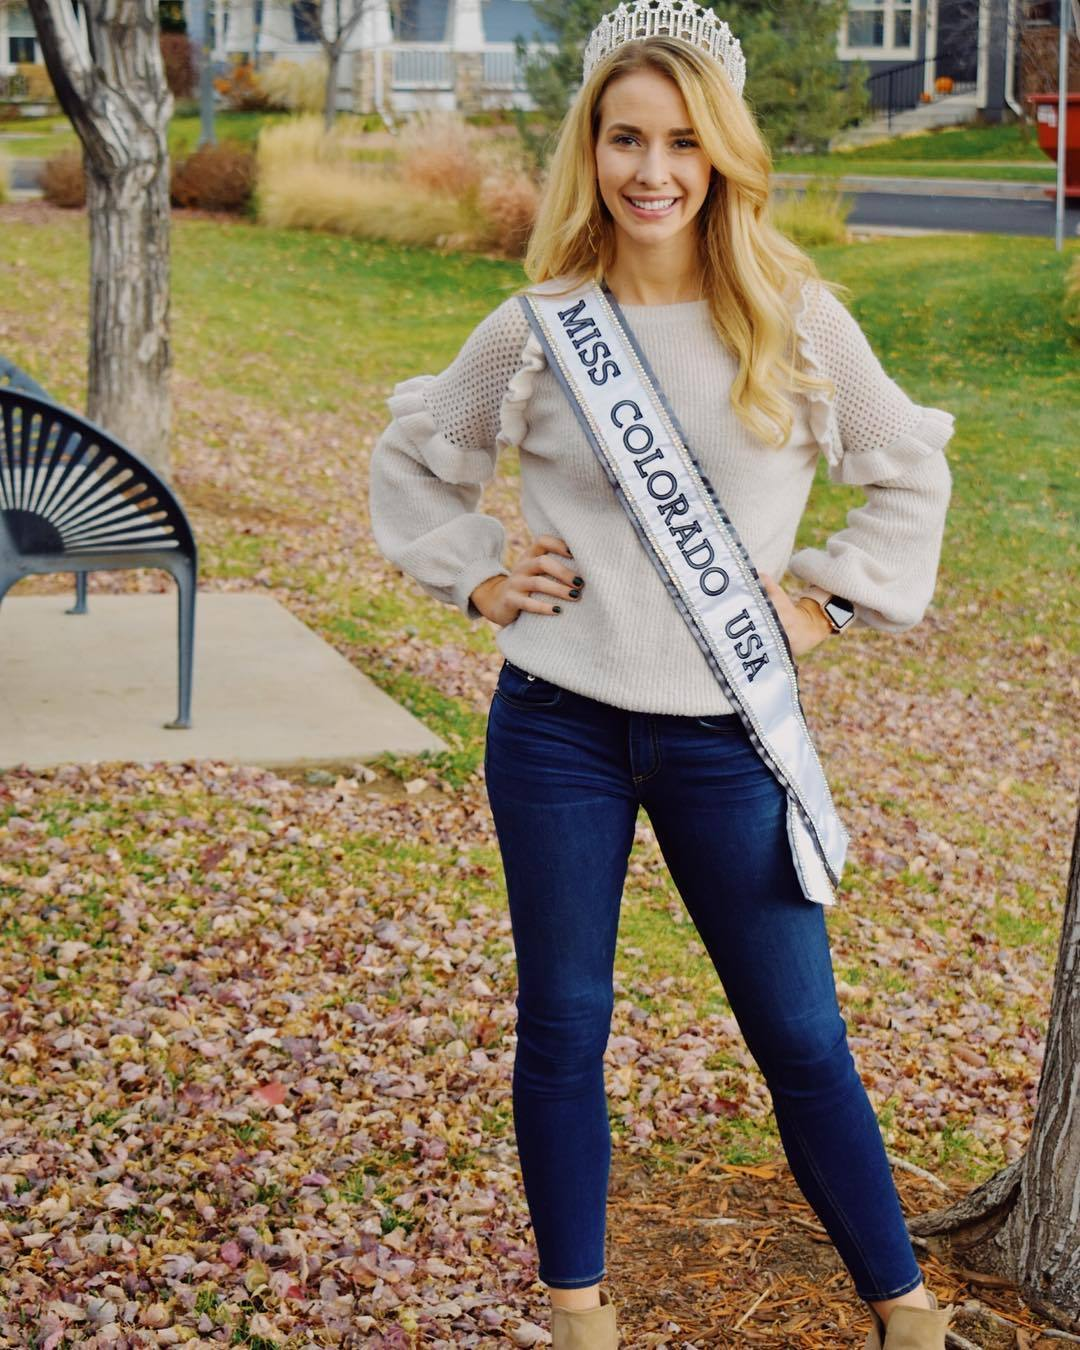 madison dorenkamp, miss colorado 2019. 43985024_195271984712414_2111300963926715778_n